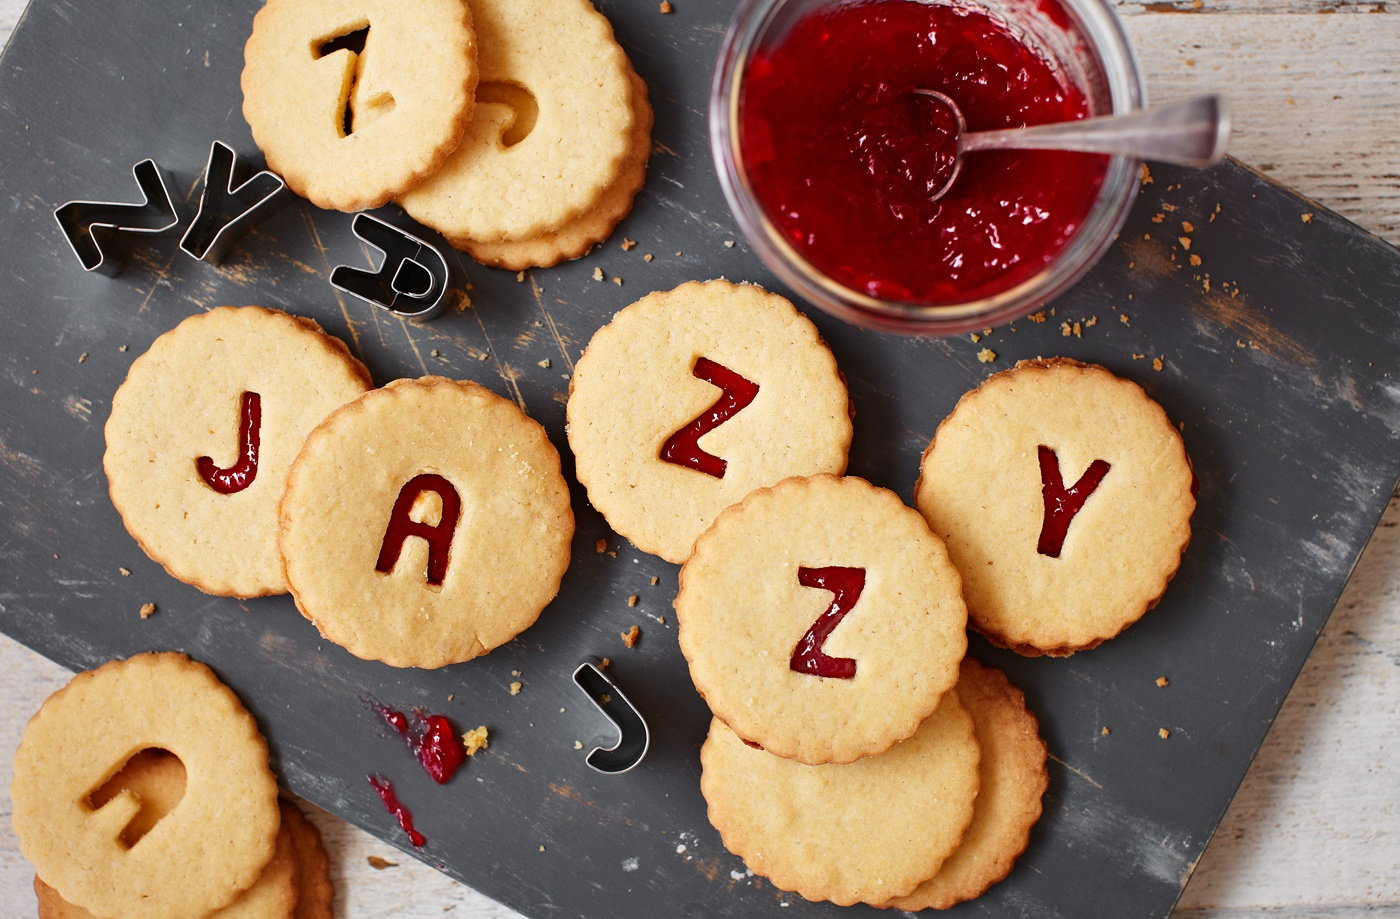 jazzy jammie dodgers | tesco real food